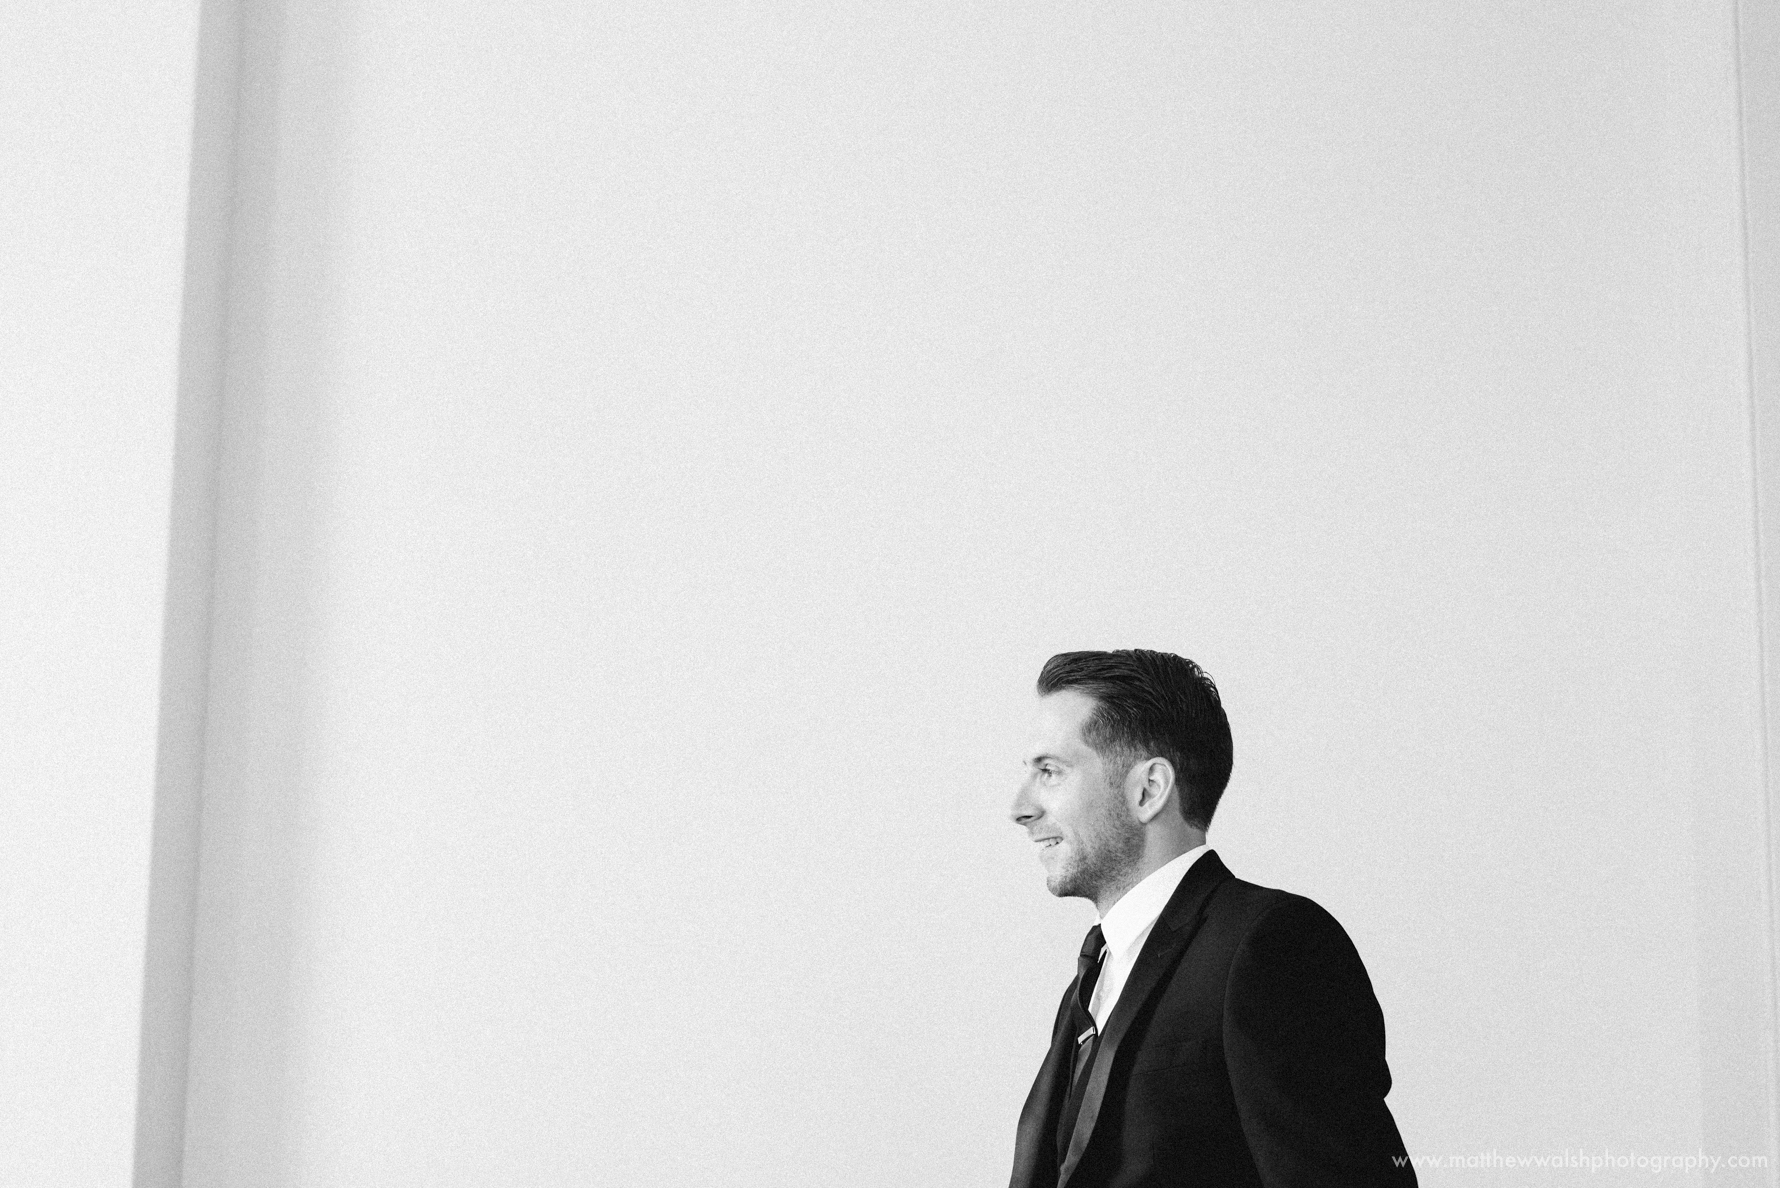 Groom standing against a white wall in one of the grand rooms, natural light flooding through the window